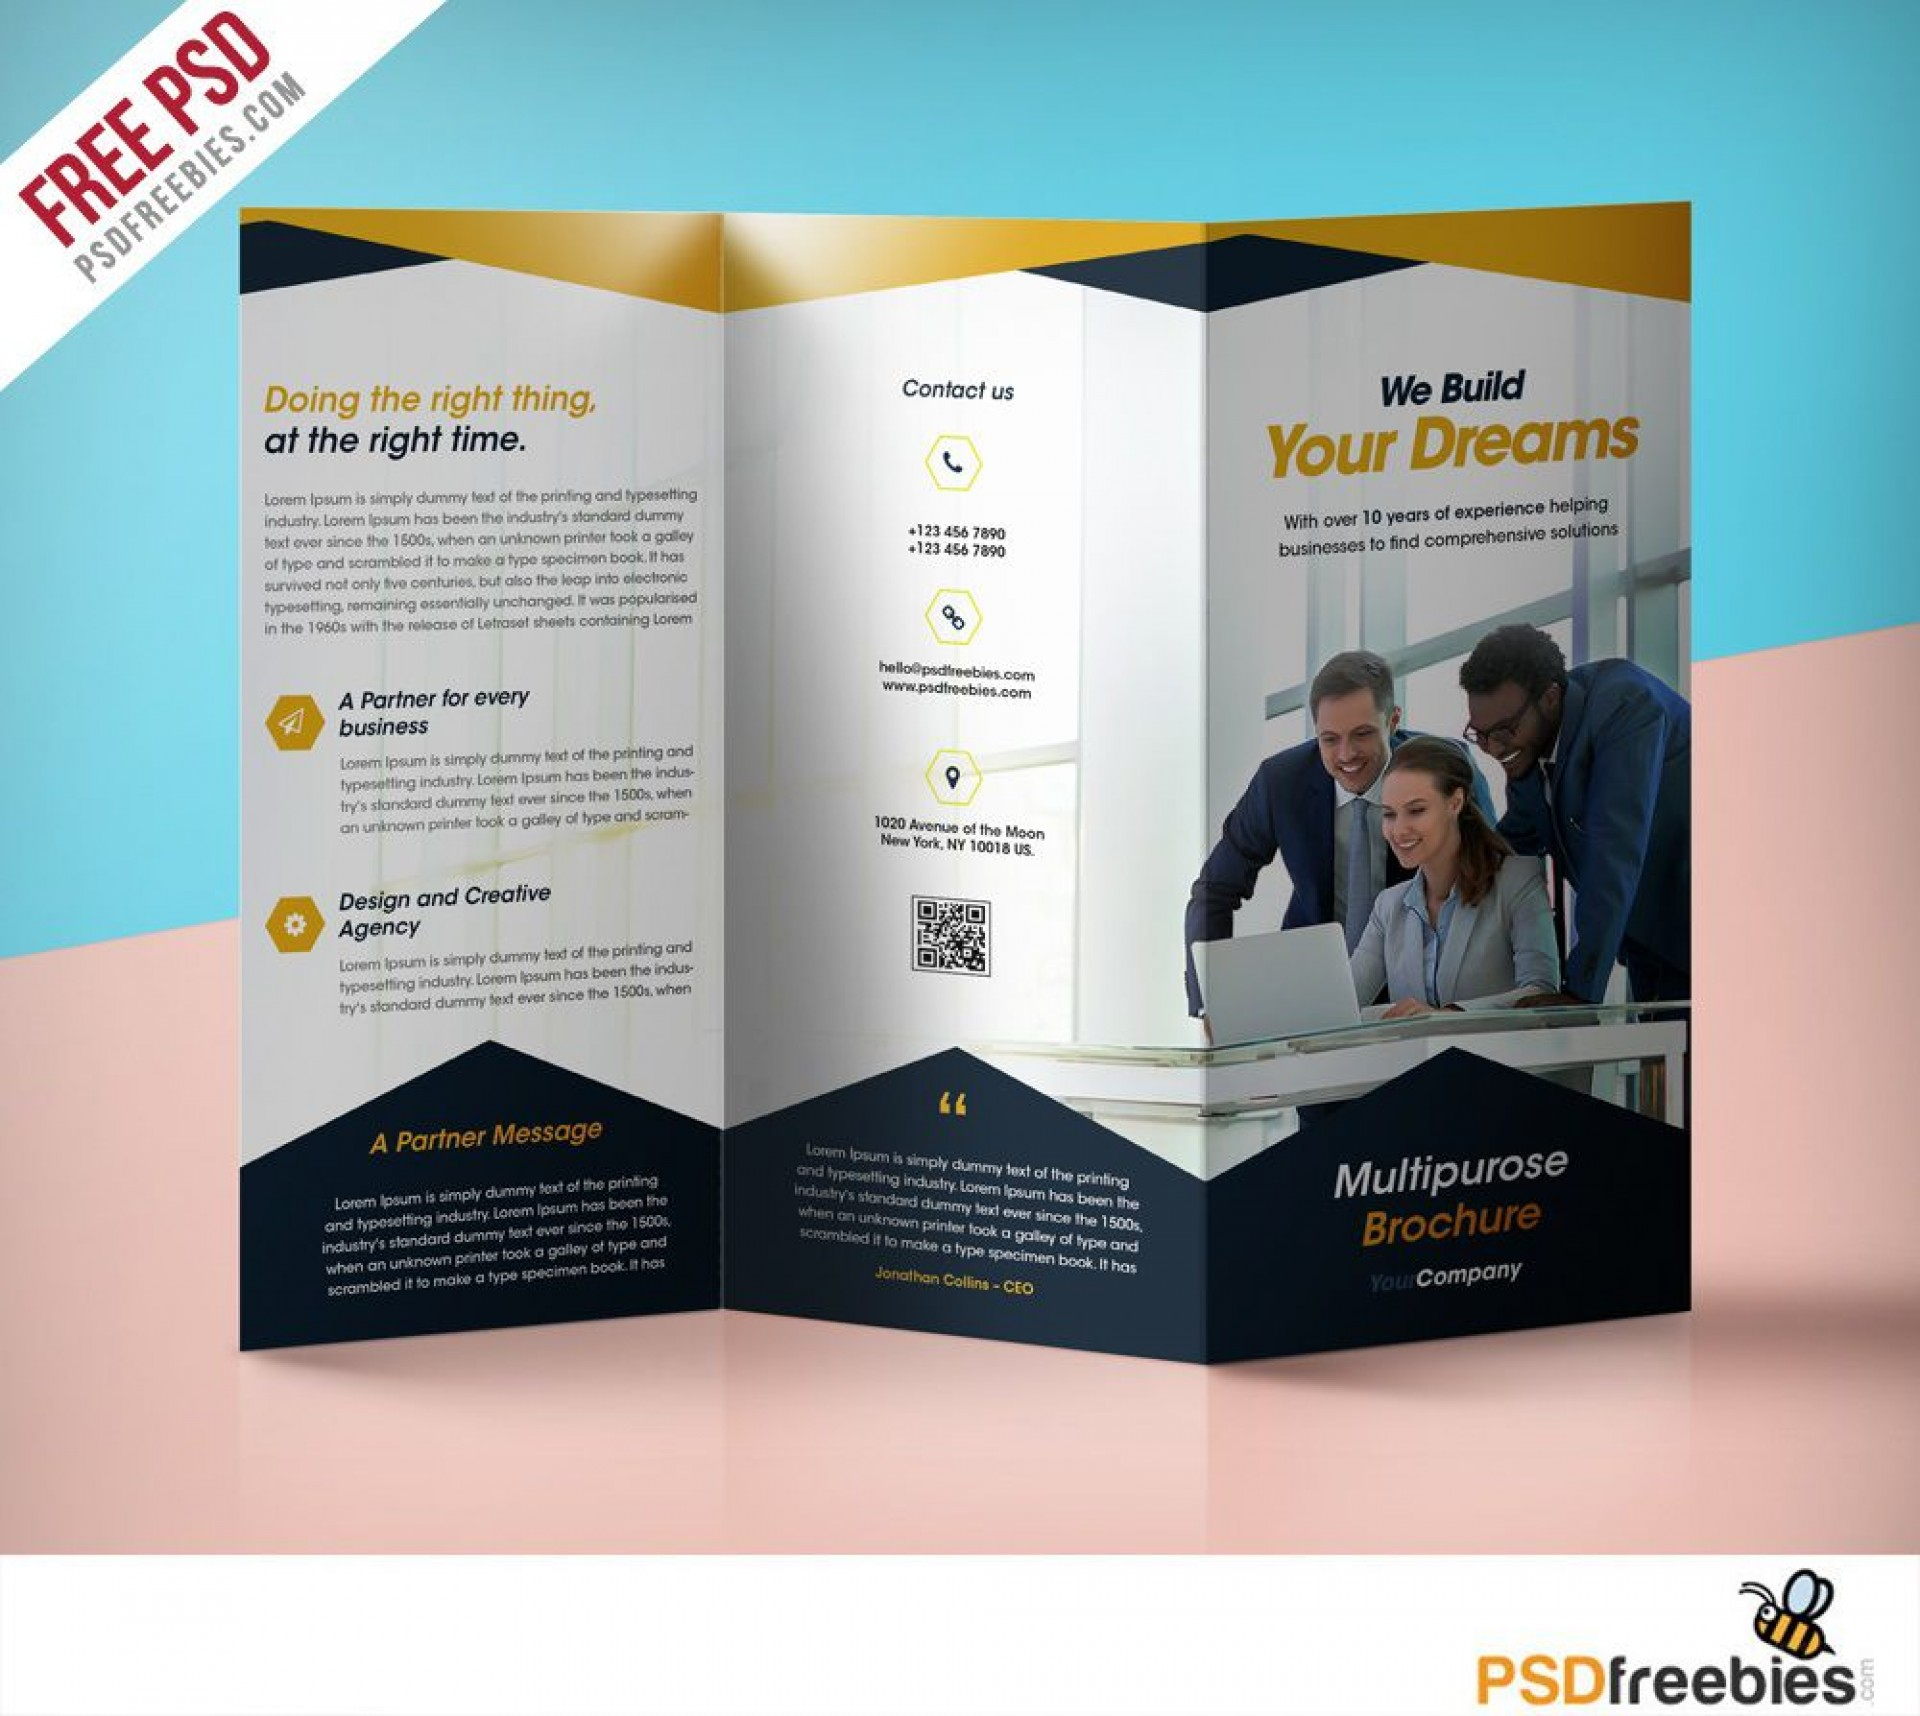 009 Surprising Brochure Design Template Free Download Psd High Def 1920